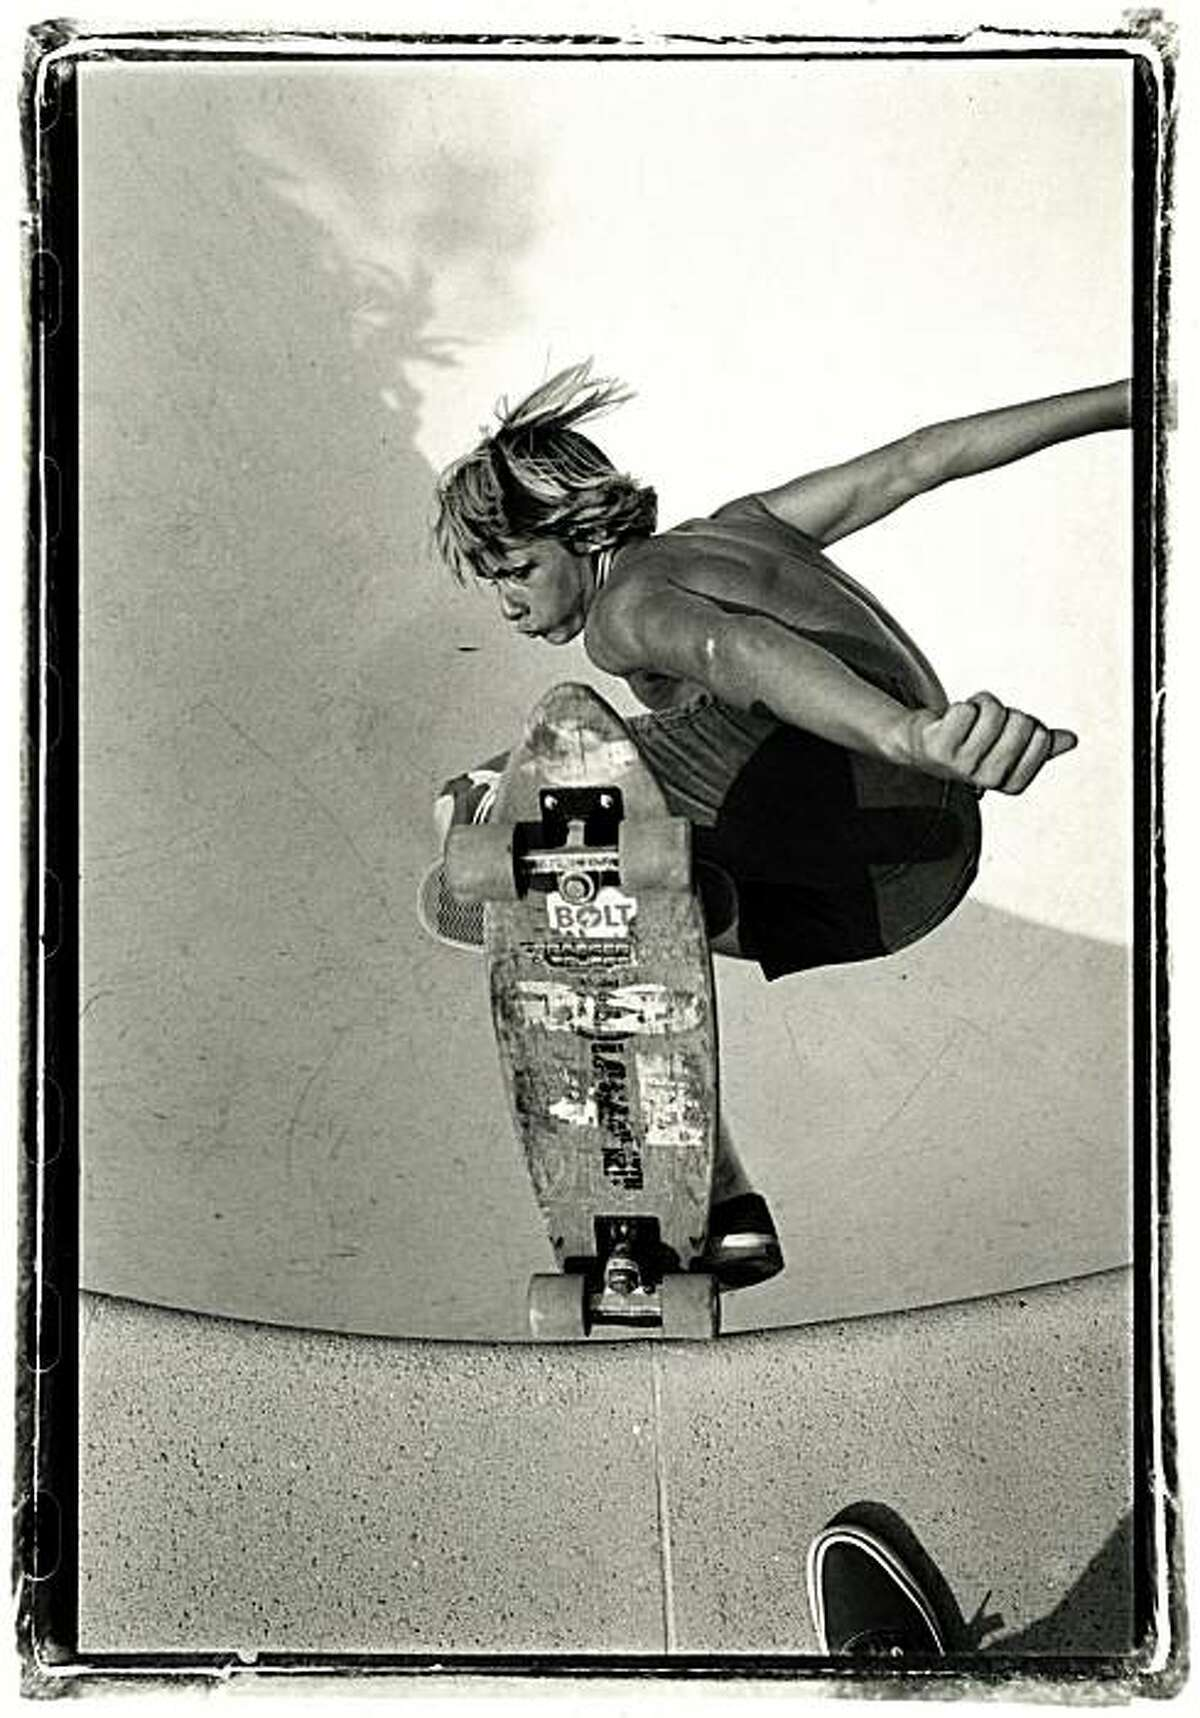 Glen Friedman's photo of Jay Adams is among those on display at 941 Geary Gallery.